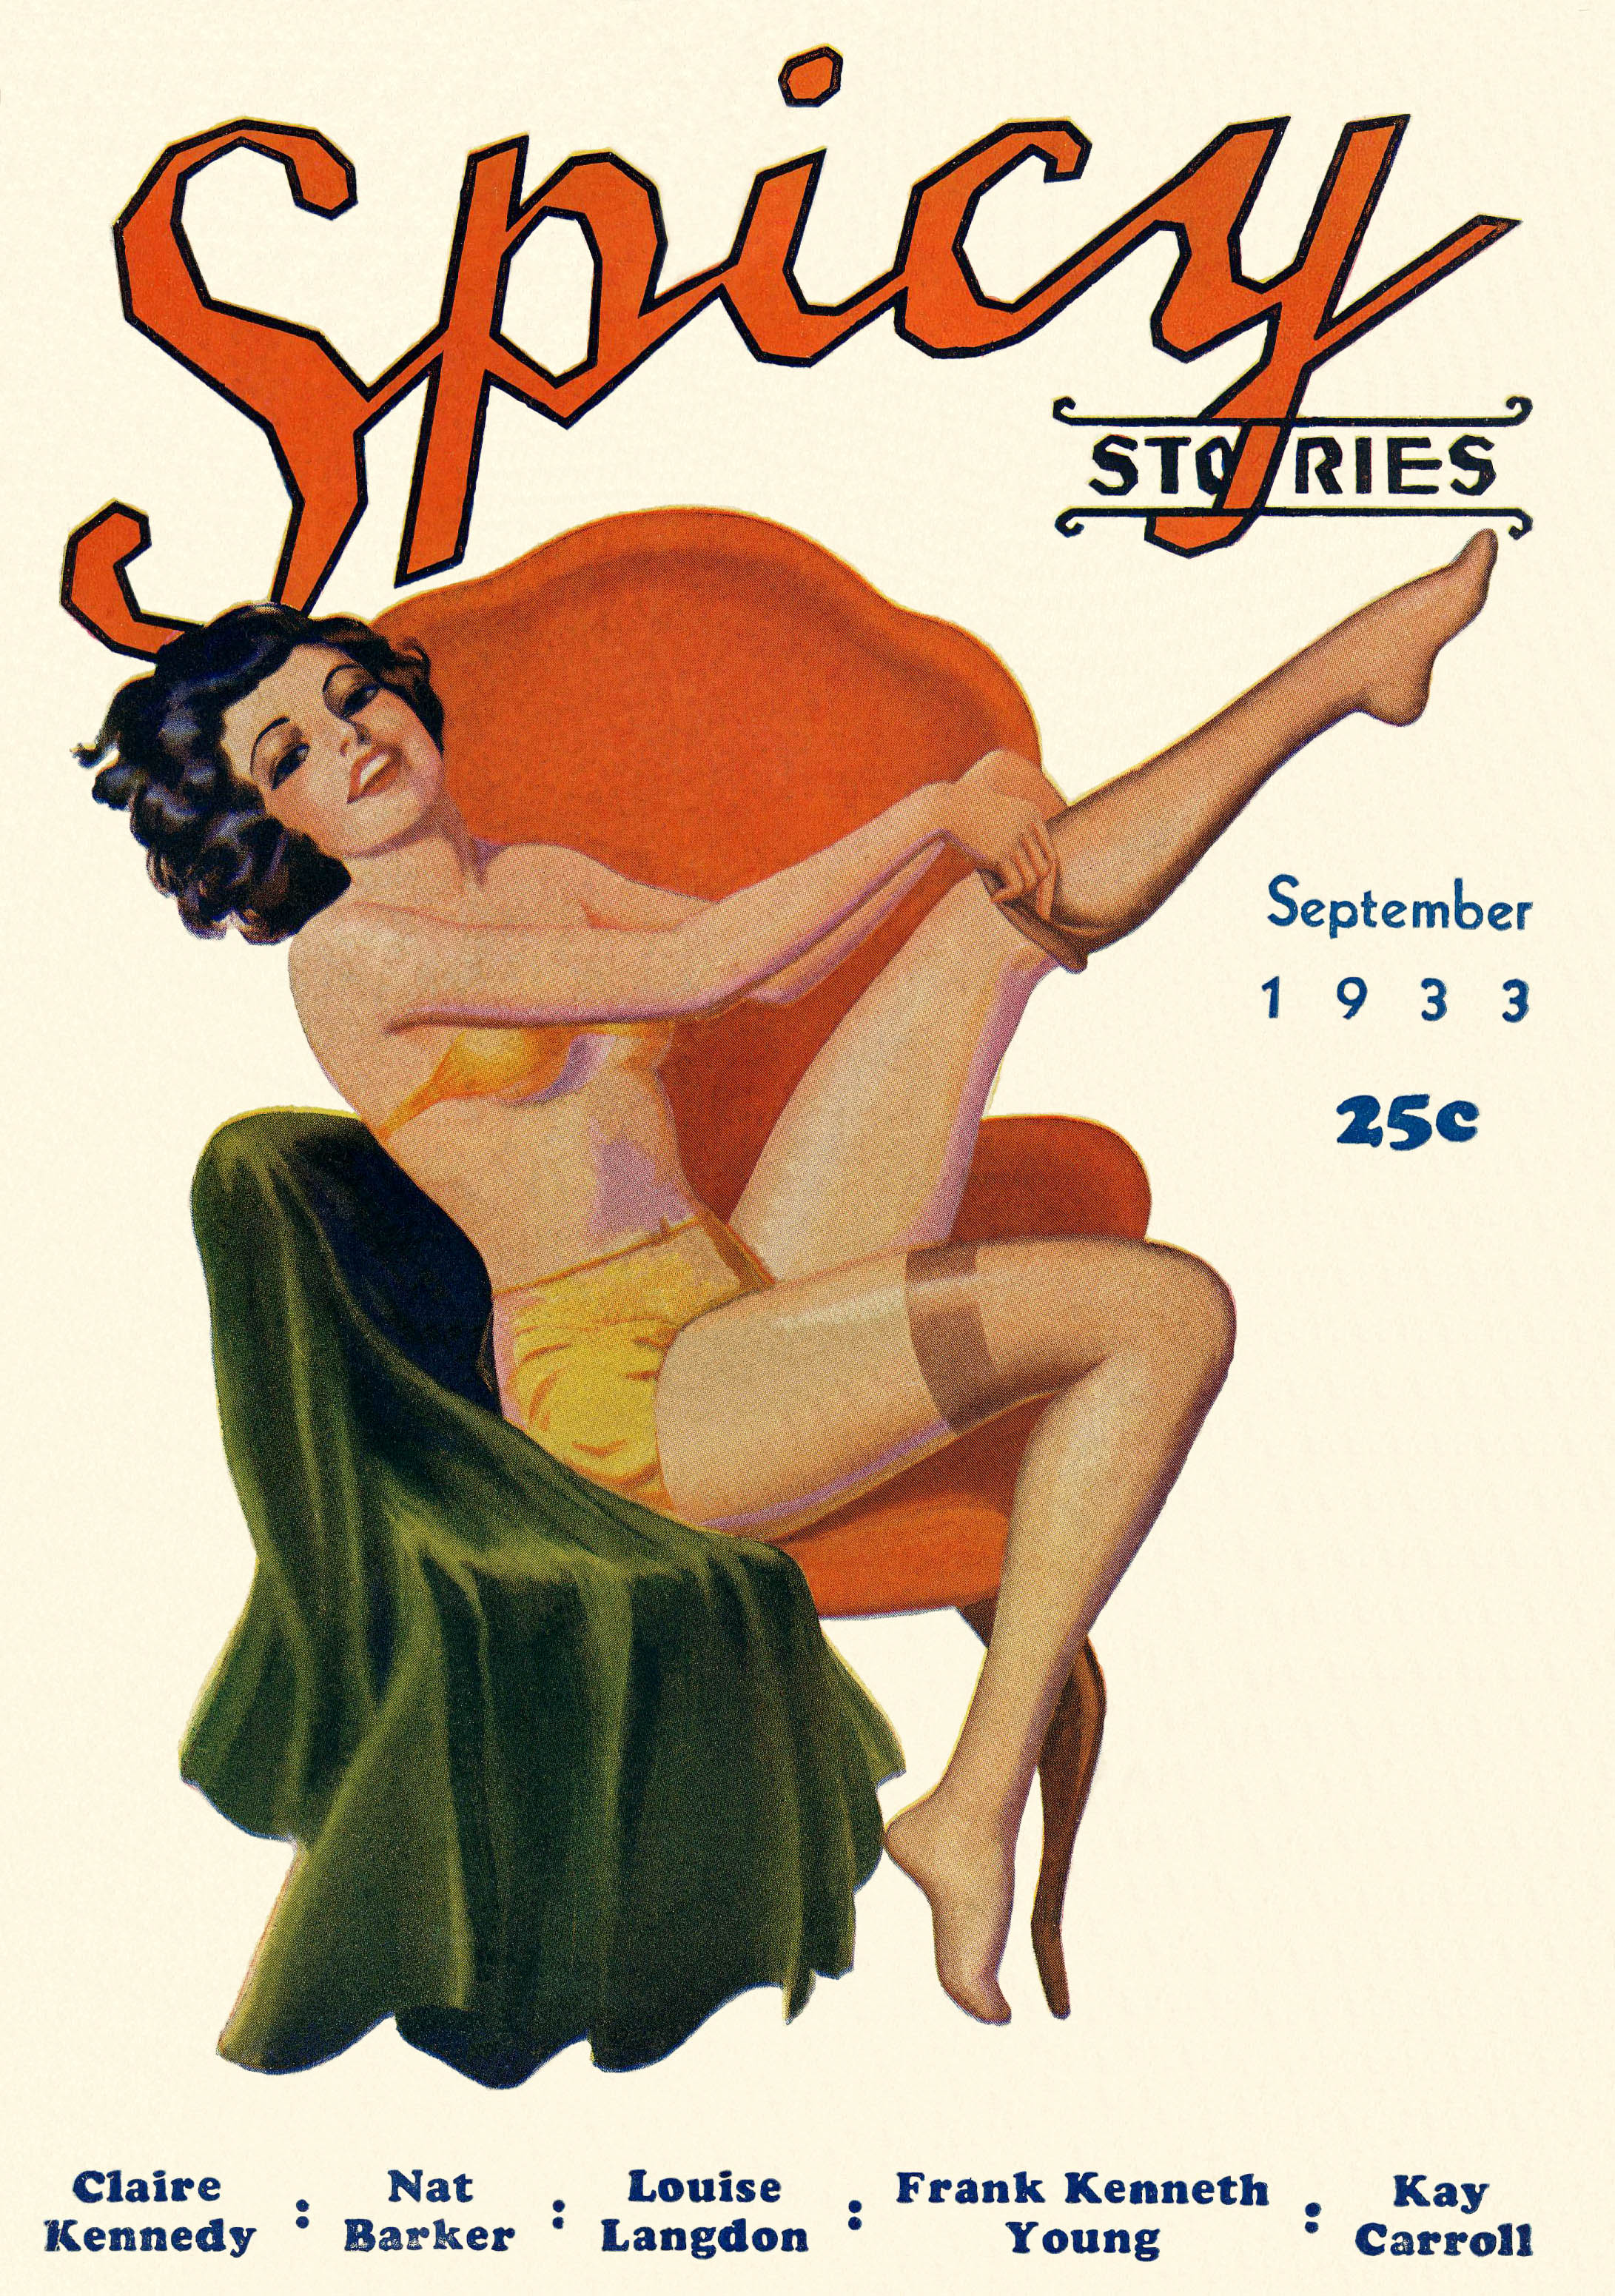 Spicy Stories, September 1933